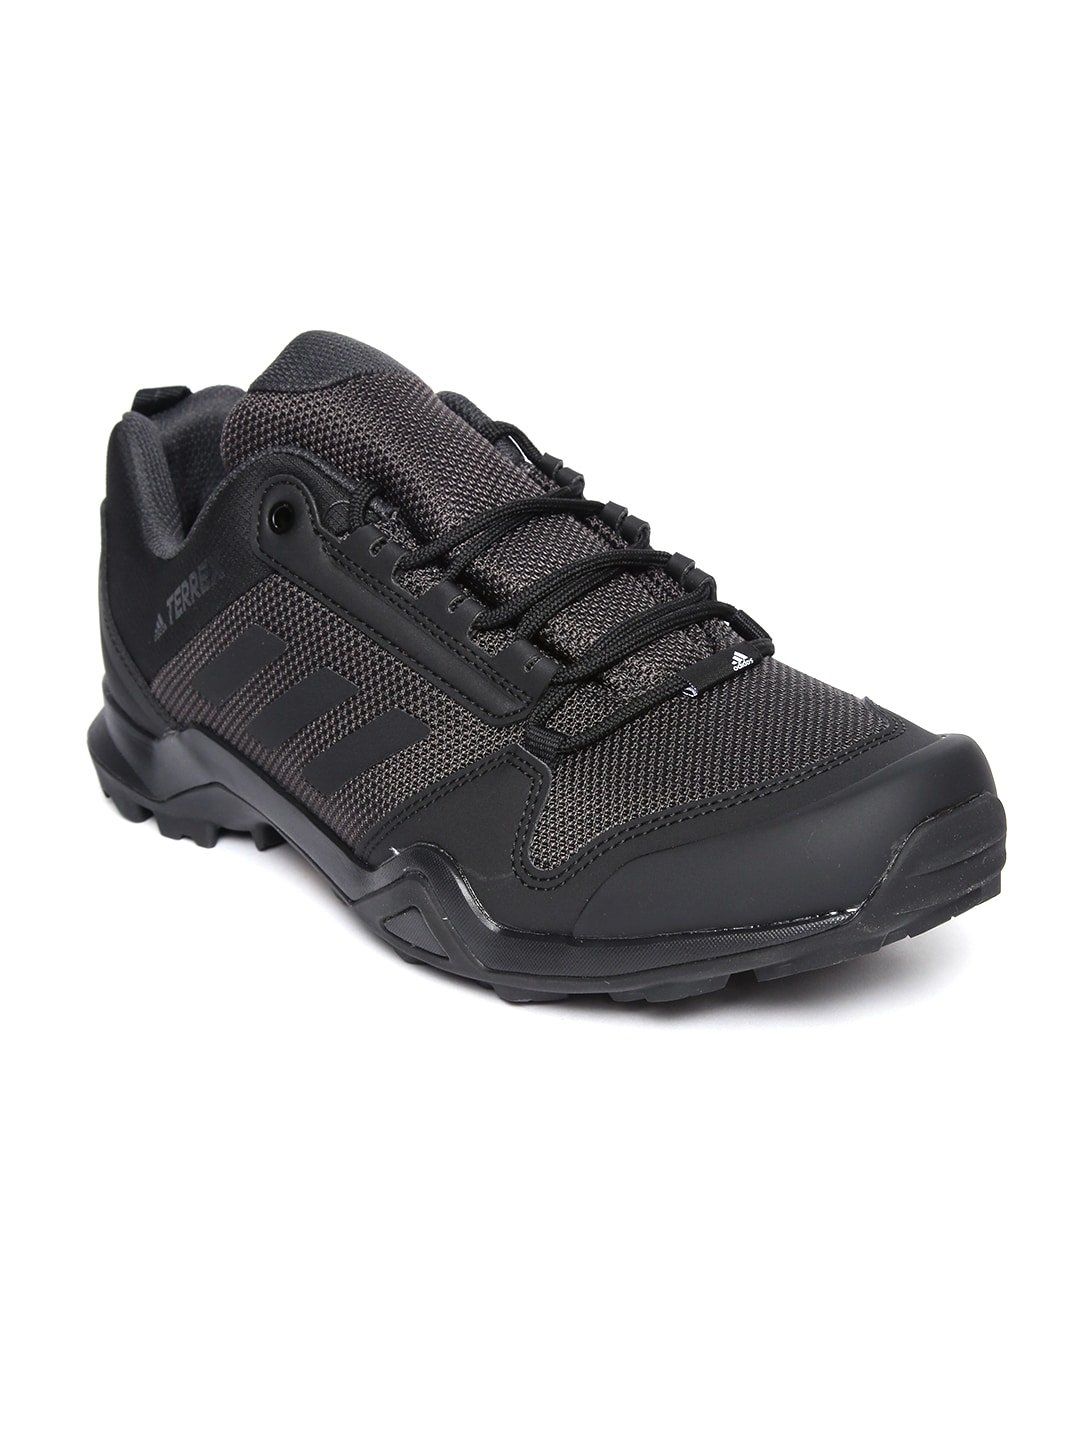 cba4968eb Adidas Terrex Shoes - Buy Adidas Terrex Shoes online in India